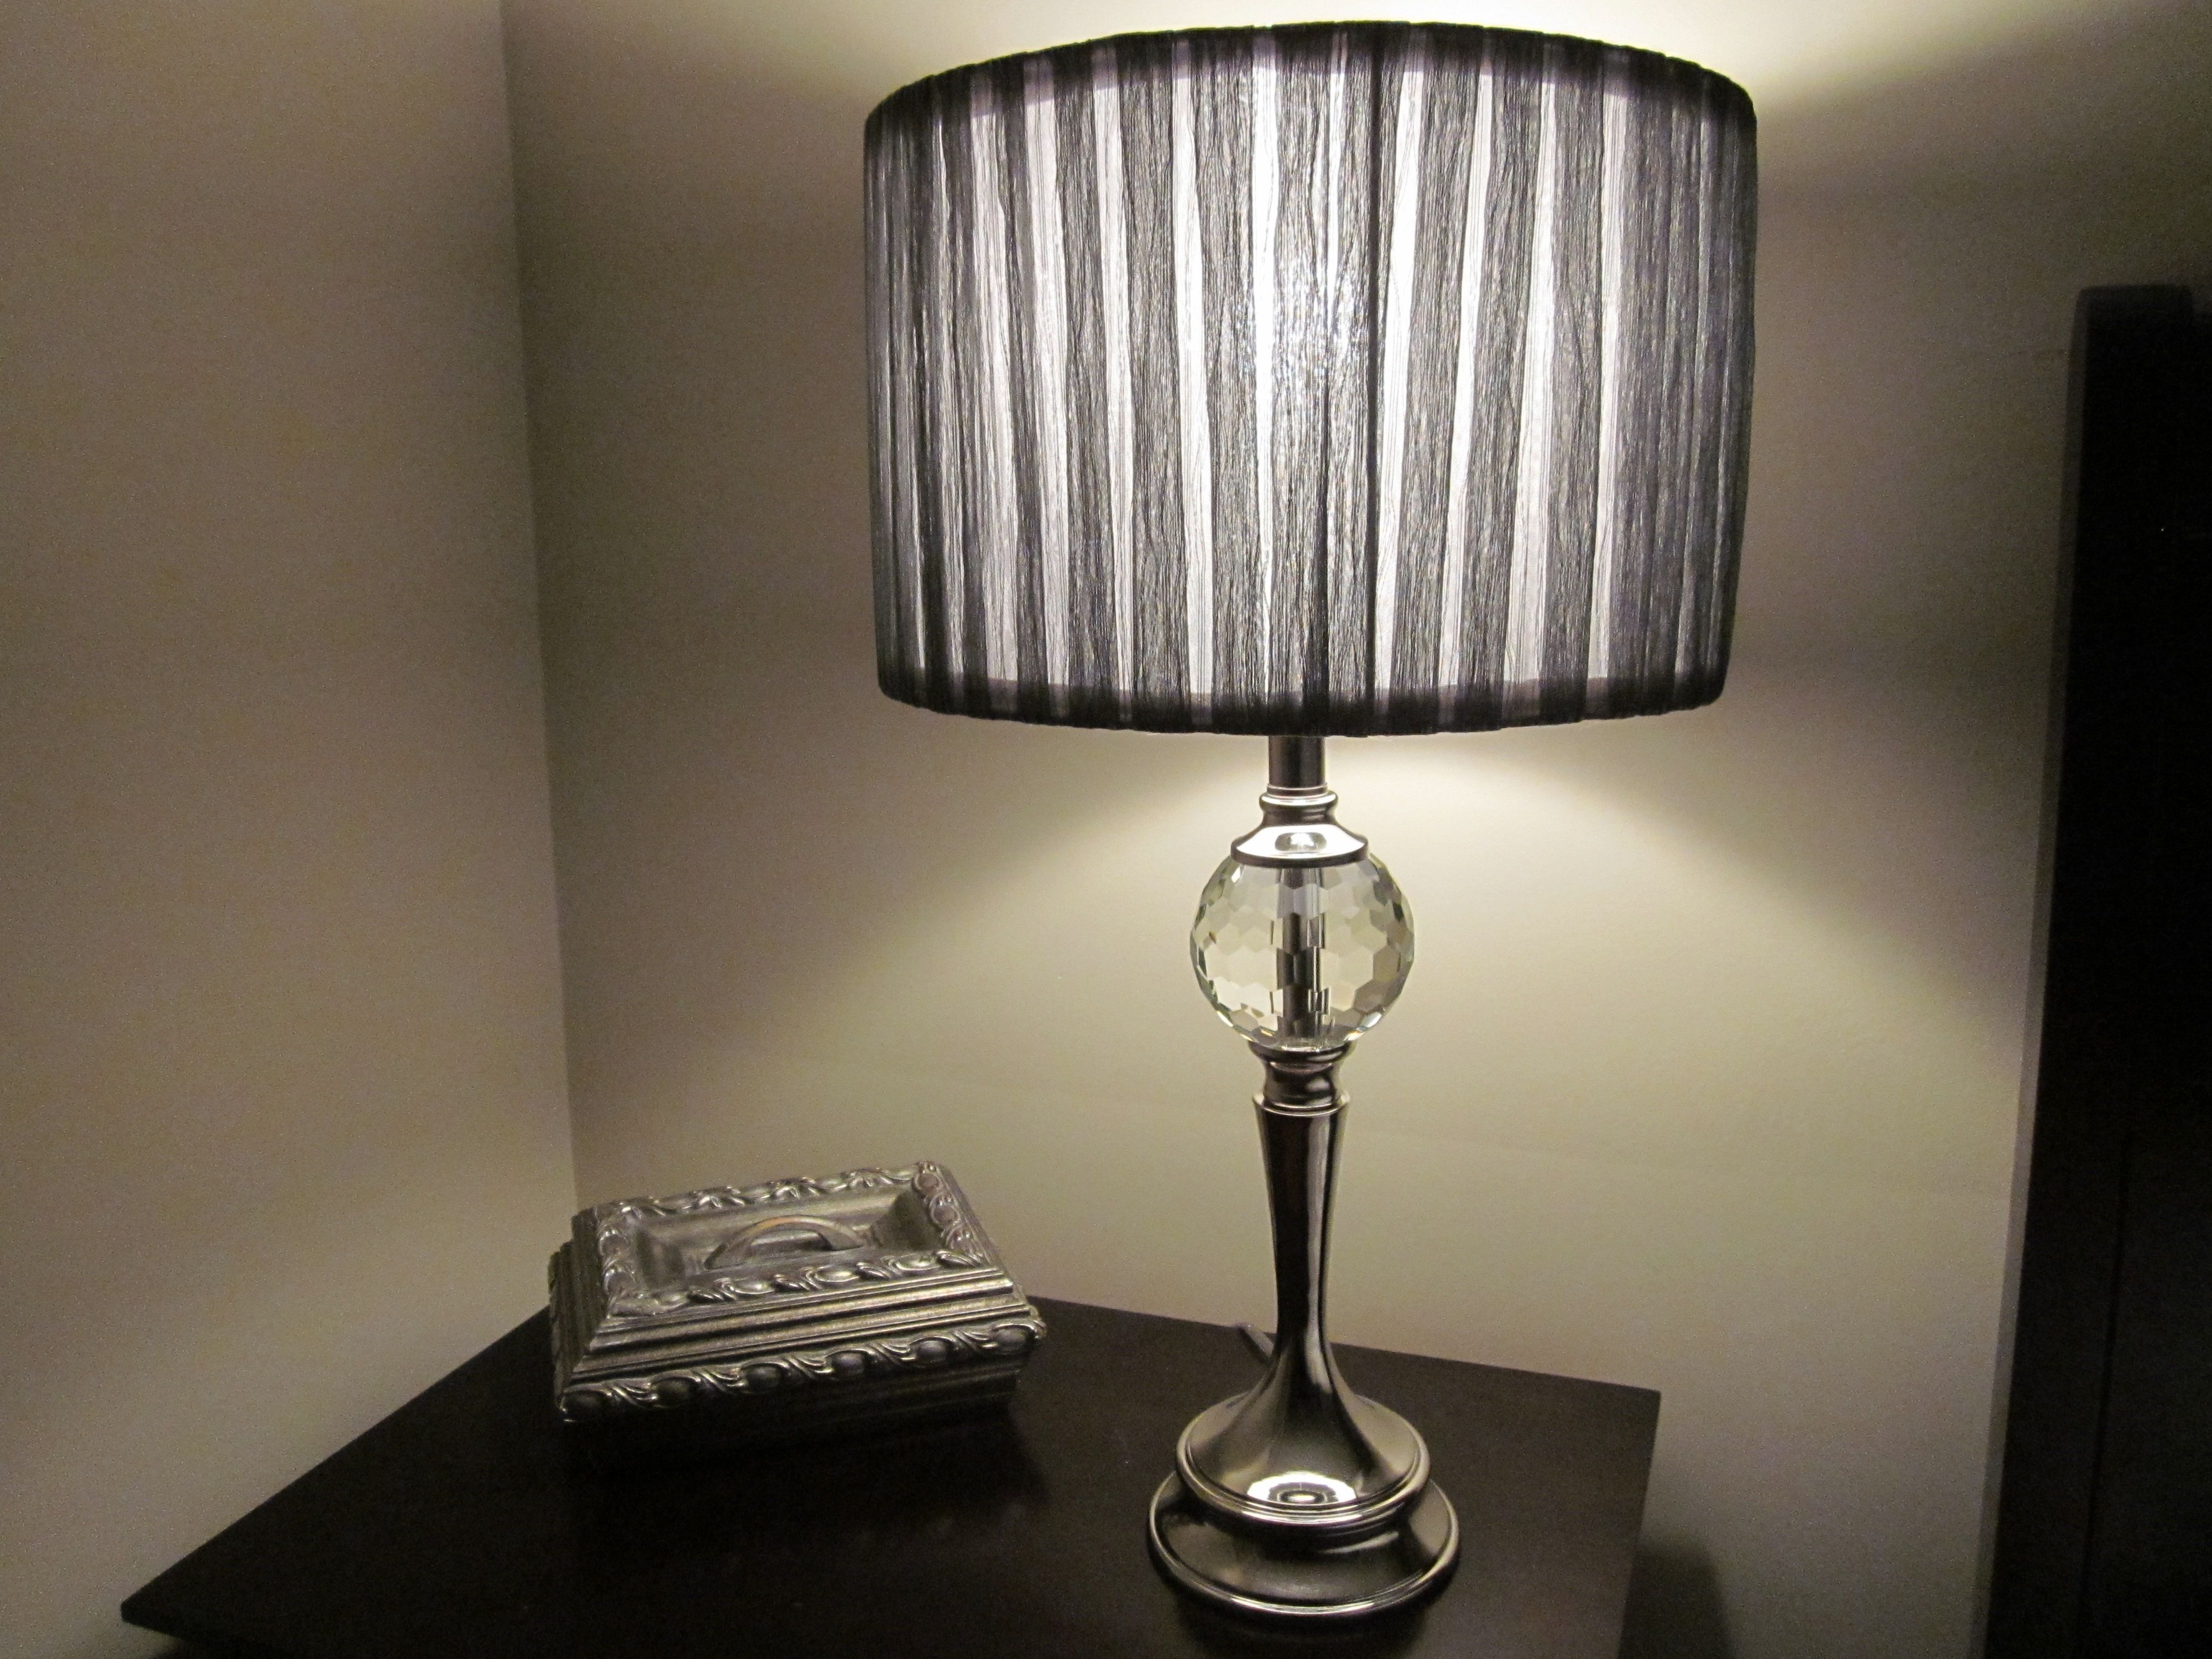 Silverbase, crystal lamp with greyshimmer shade for